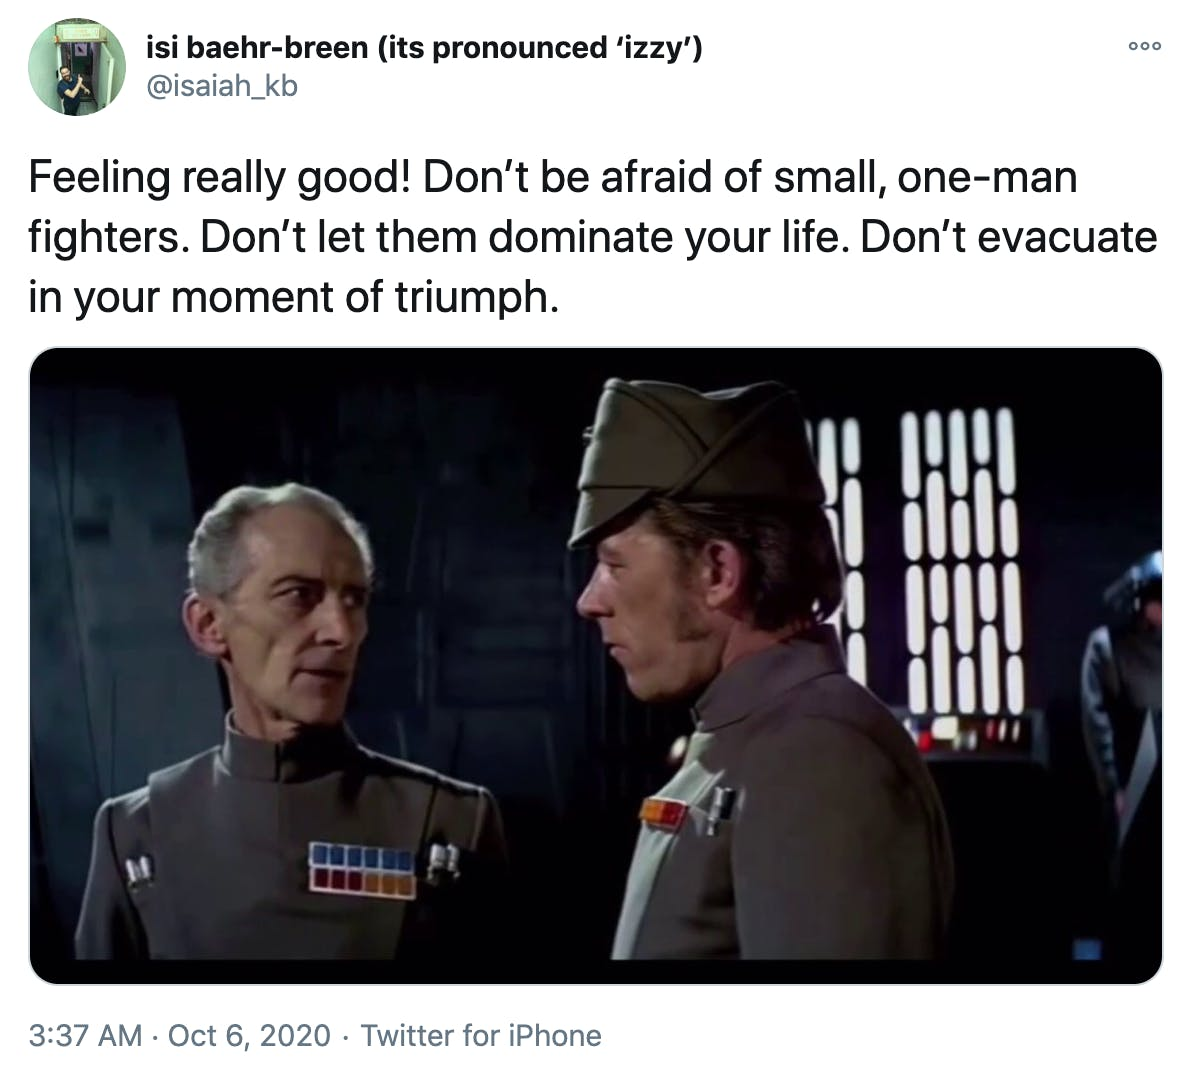 """""""Feeling really good! Don't be afraid of small, one-man fighters. Don't let them dominate your life. Don't evacuate in your moment of triumph."""" Screencap of Grand Moff Tarkin talking to one of his staff from Star Wars: A New Hope"""